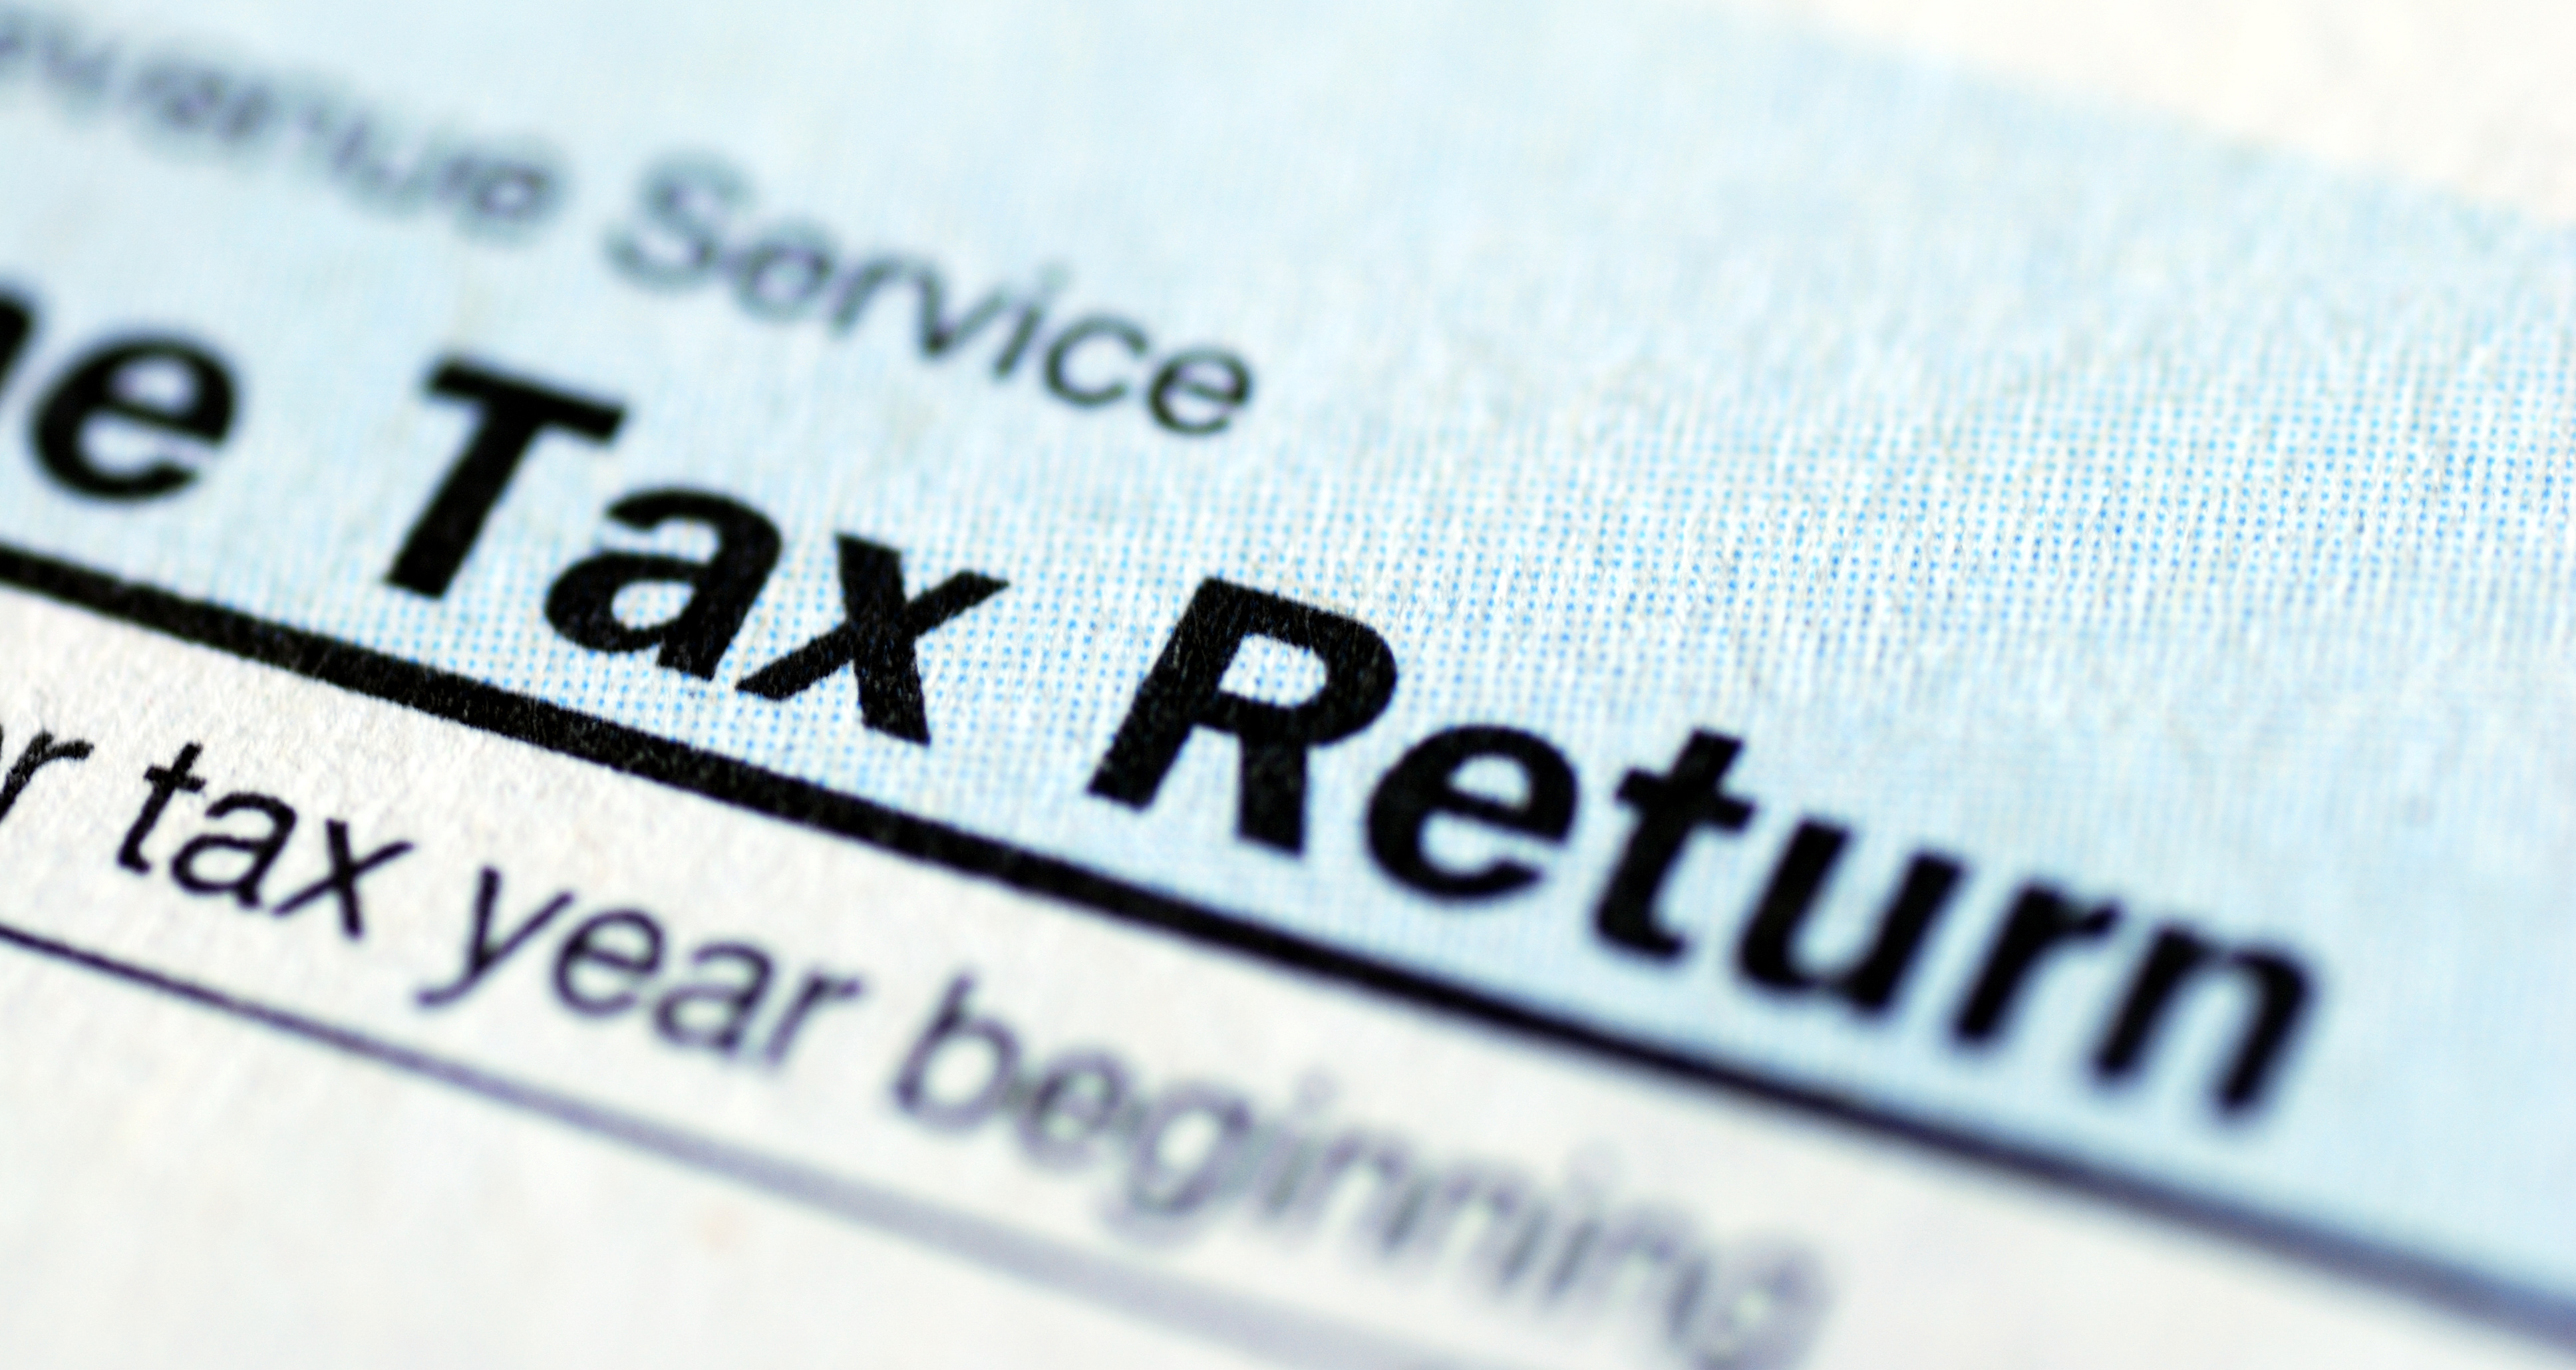 The final tax return filing deadline is approaching fast… - https://roomslocal.co.uk/blog/the-final-tax-return-filing-deadline-is-approaching-fast #final #return #filing #deadline #approaching